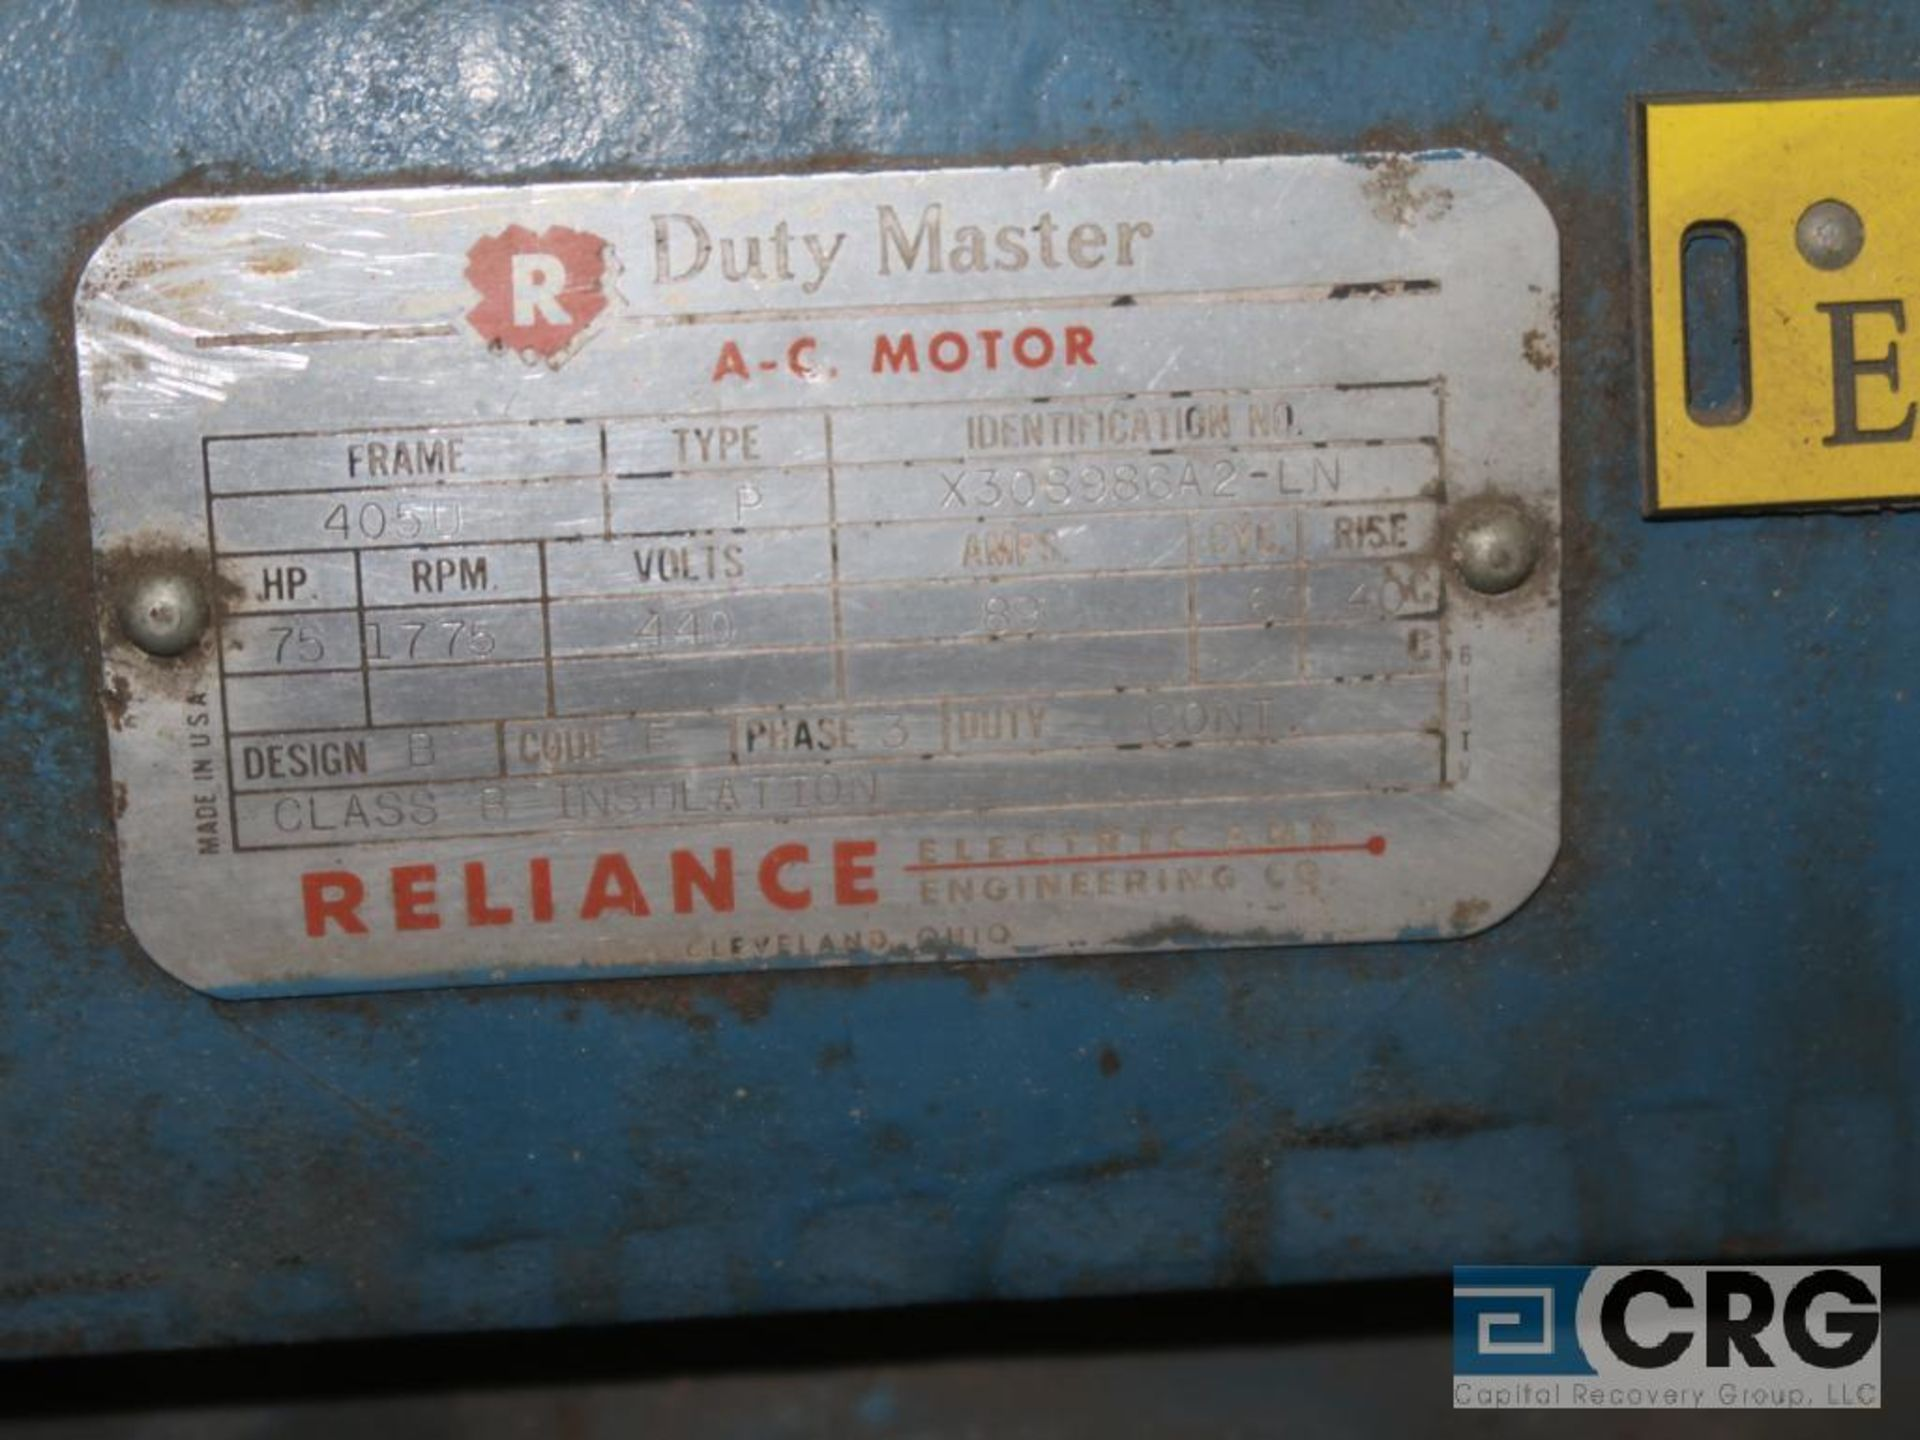 Reliance Duty Master A-C motor, 75 HP, 1,775 RPMs, 440 volt, 3 ph., 405U frame (Finish Building) - Image 2 of 2